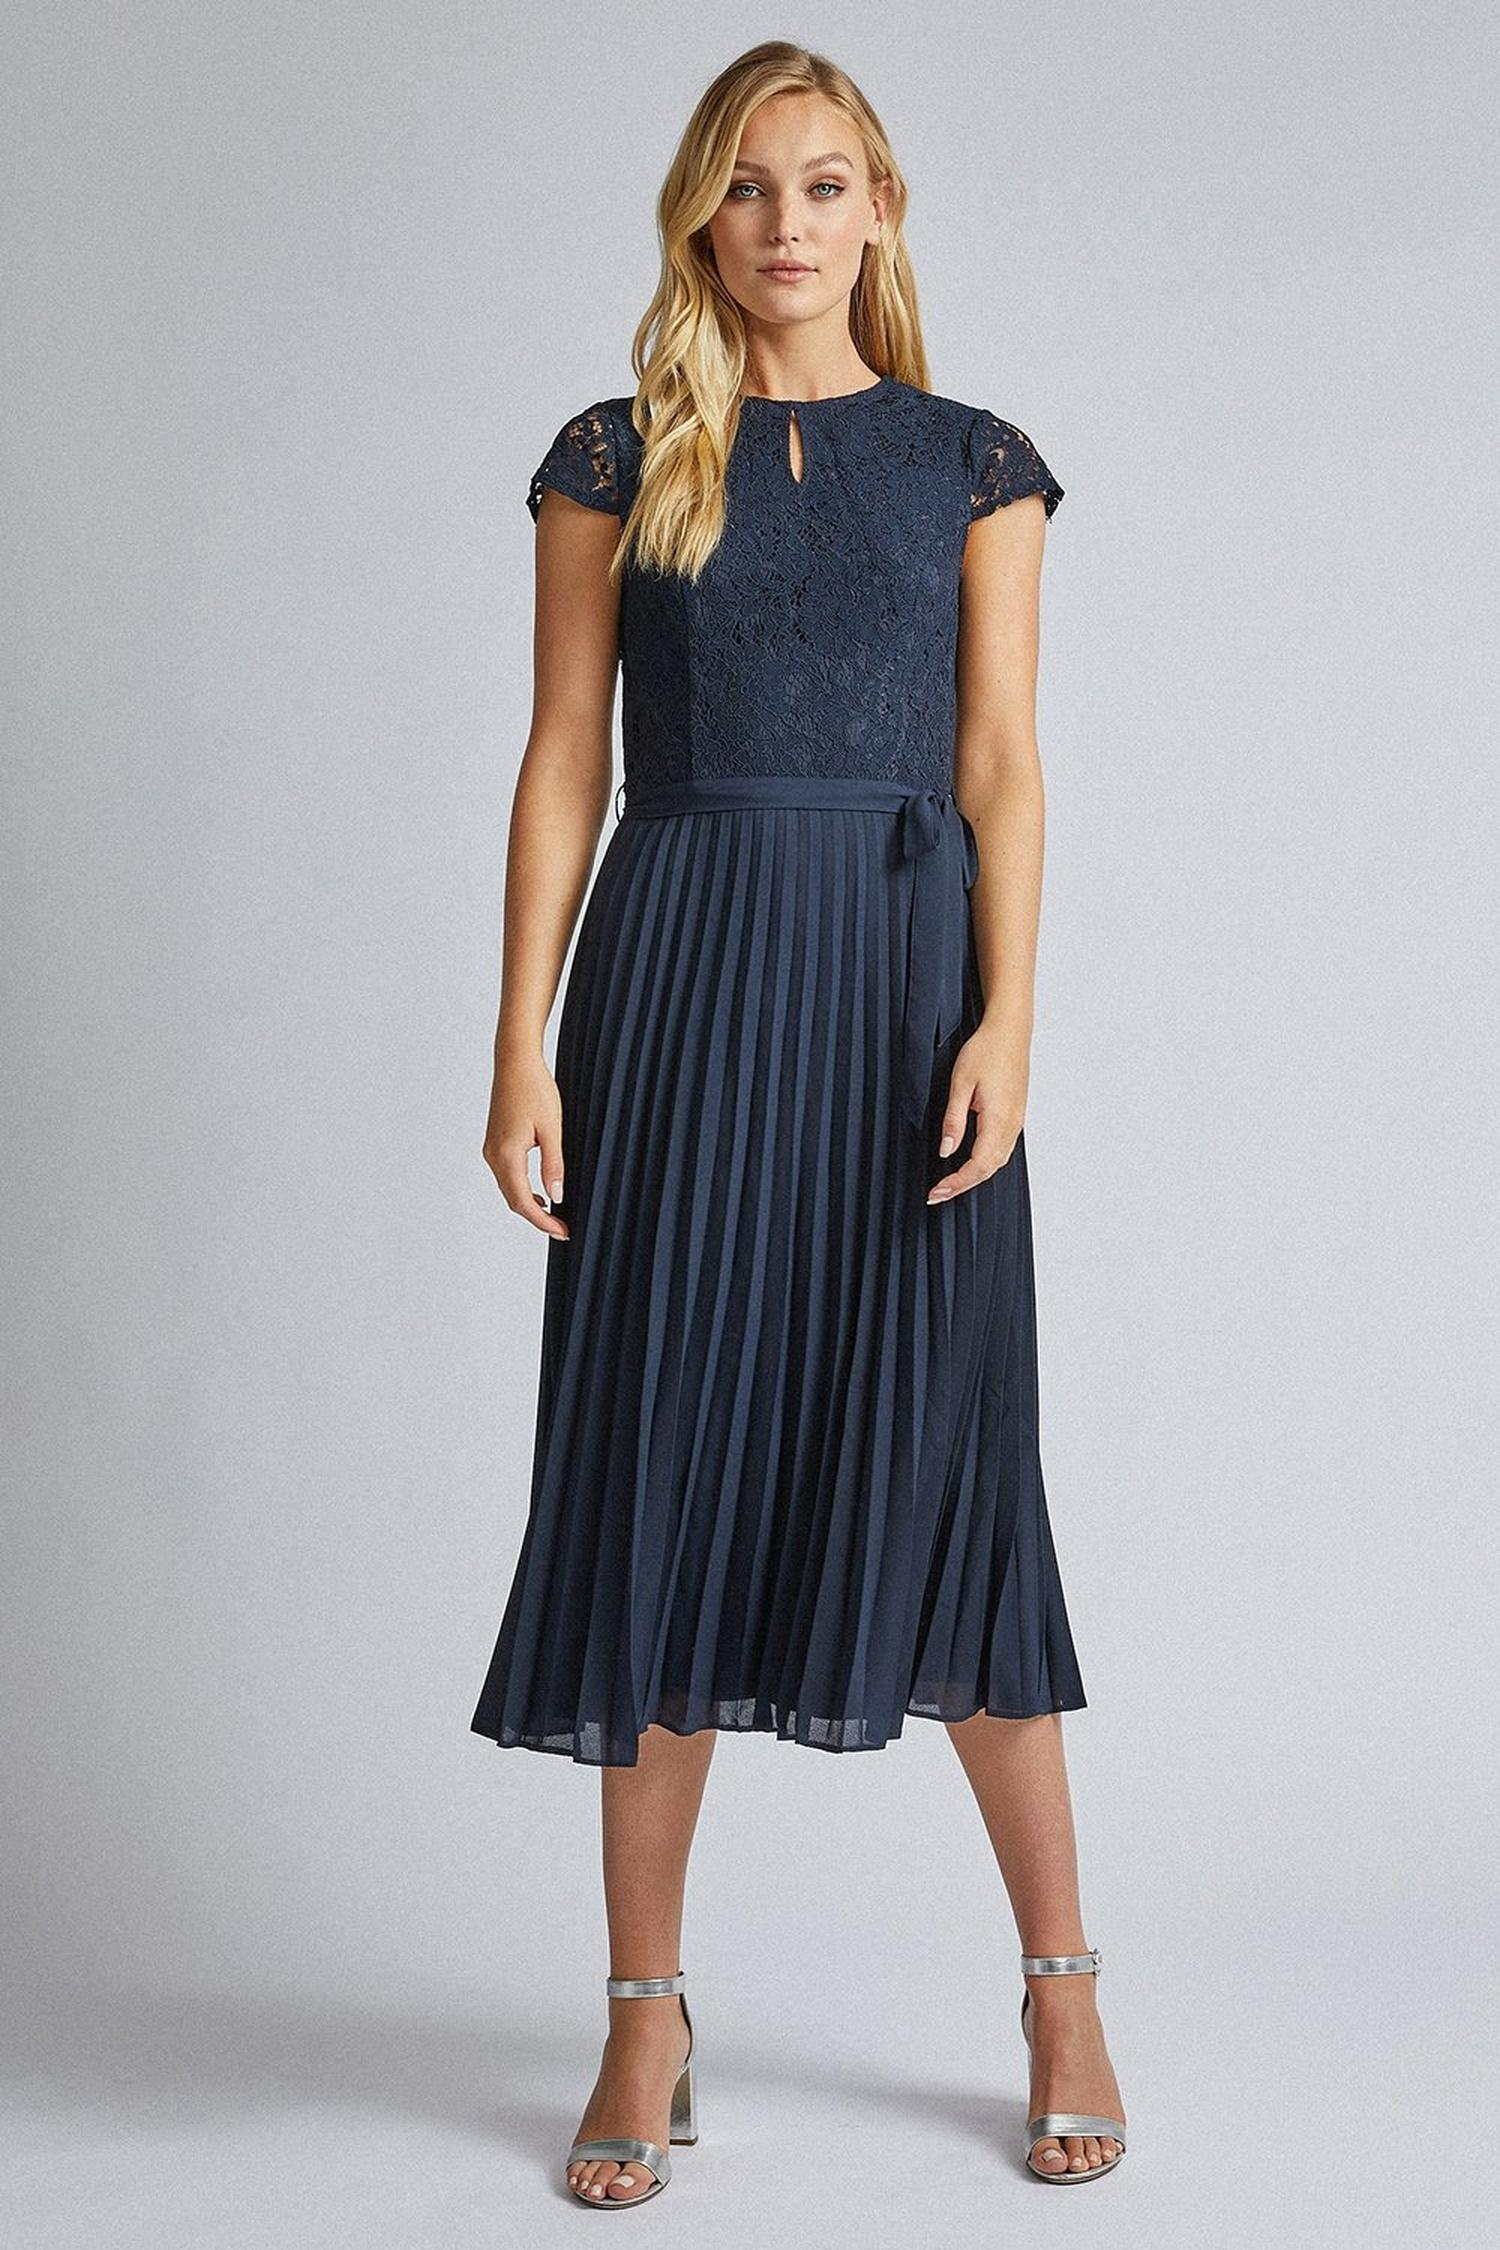 148 Tall Navy Blue Lace Pleated Dress image number 1